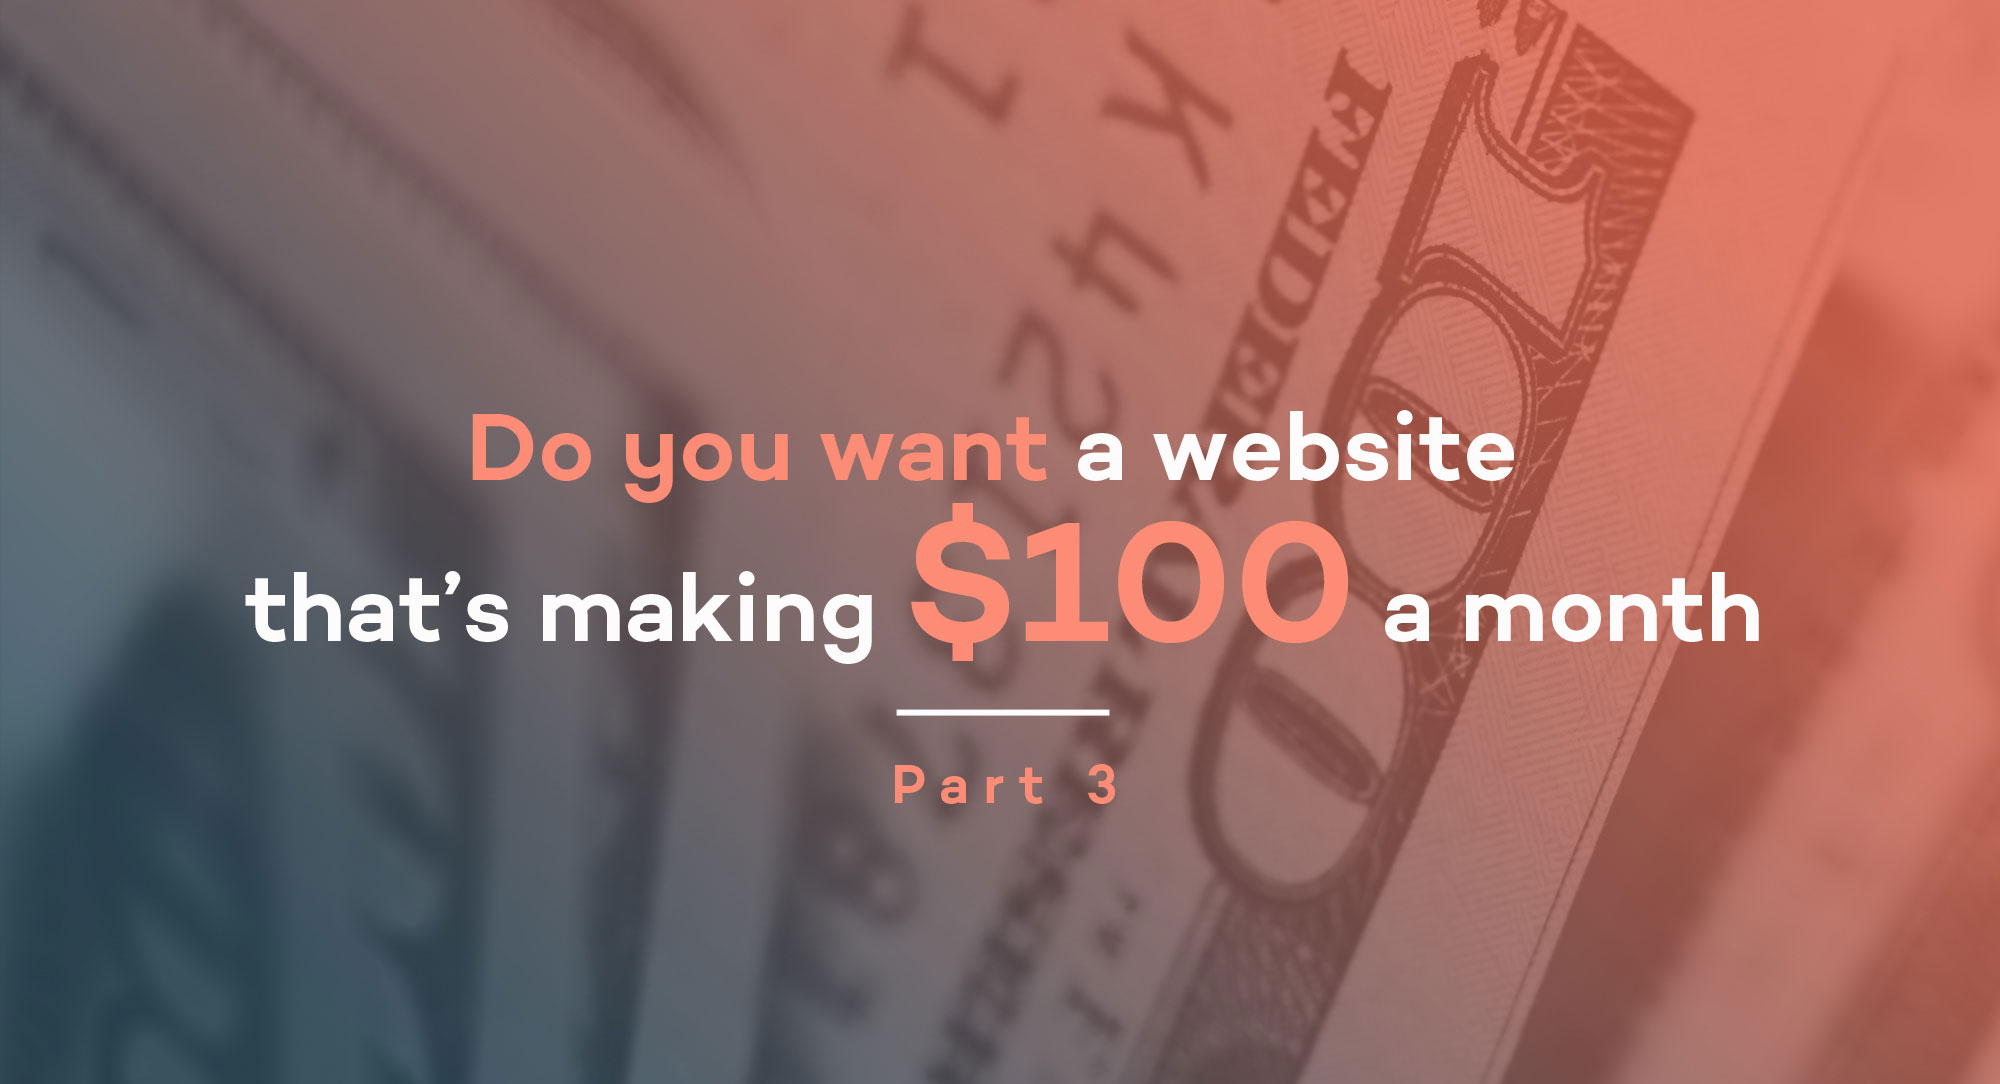 Do-you-want-a-website-that's-making-$100-a-month-(part-3)